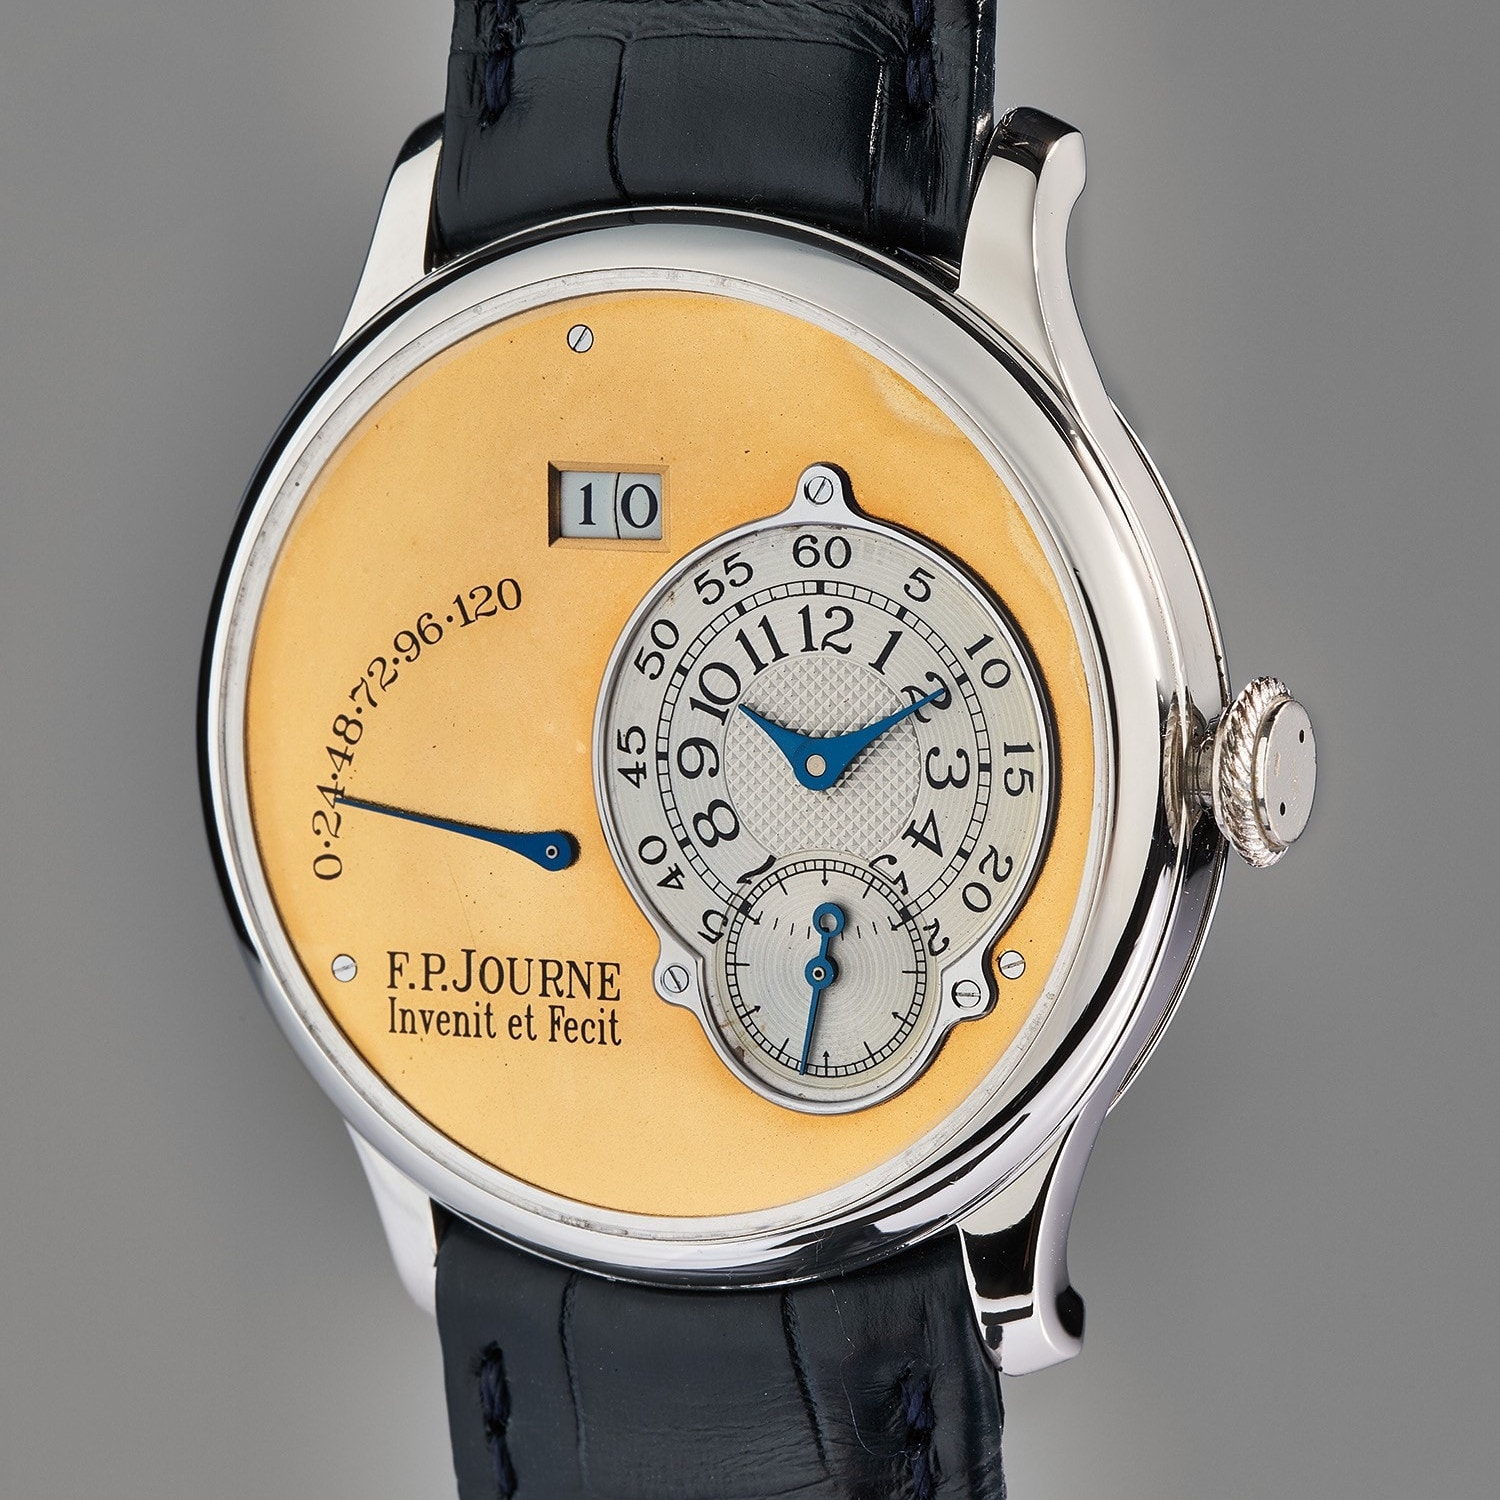 Photo by Phillips Watches